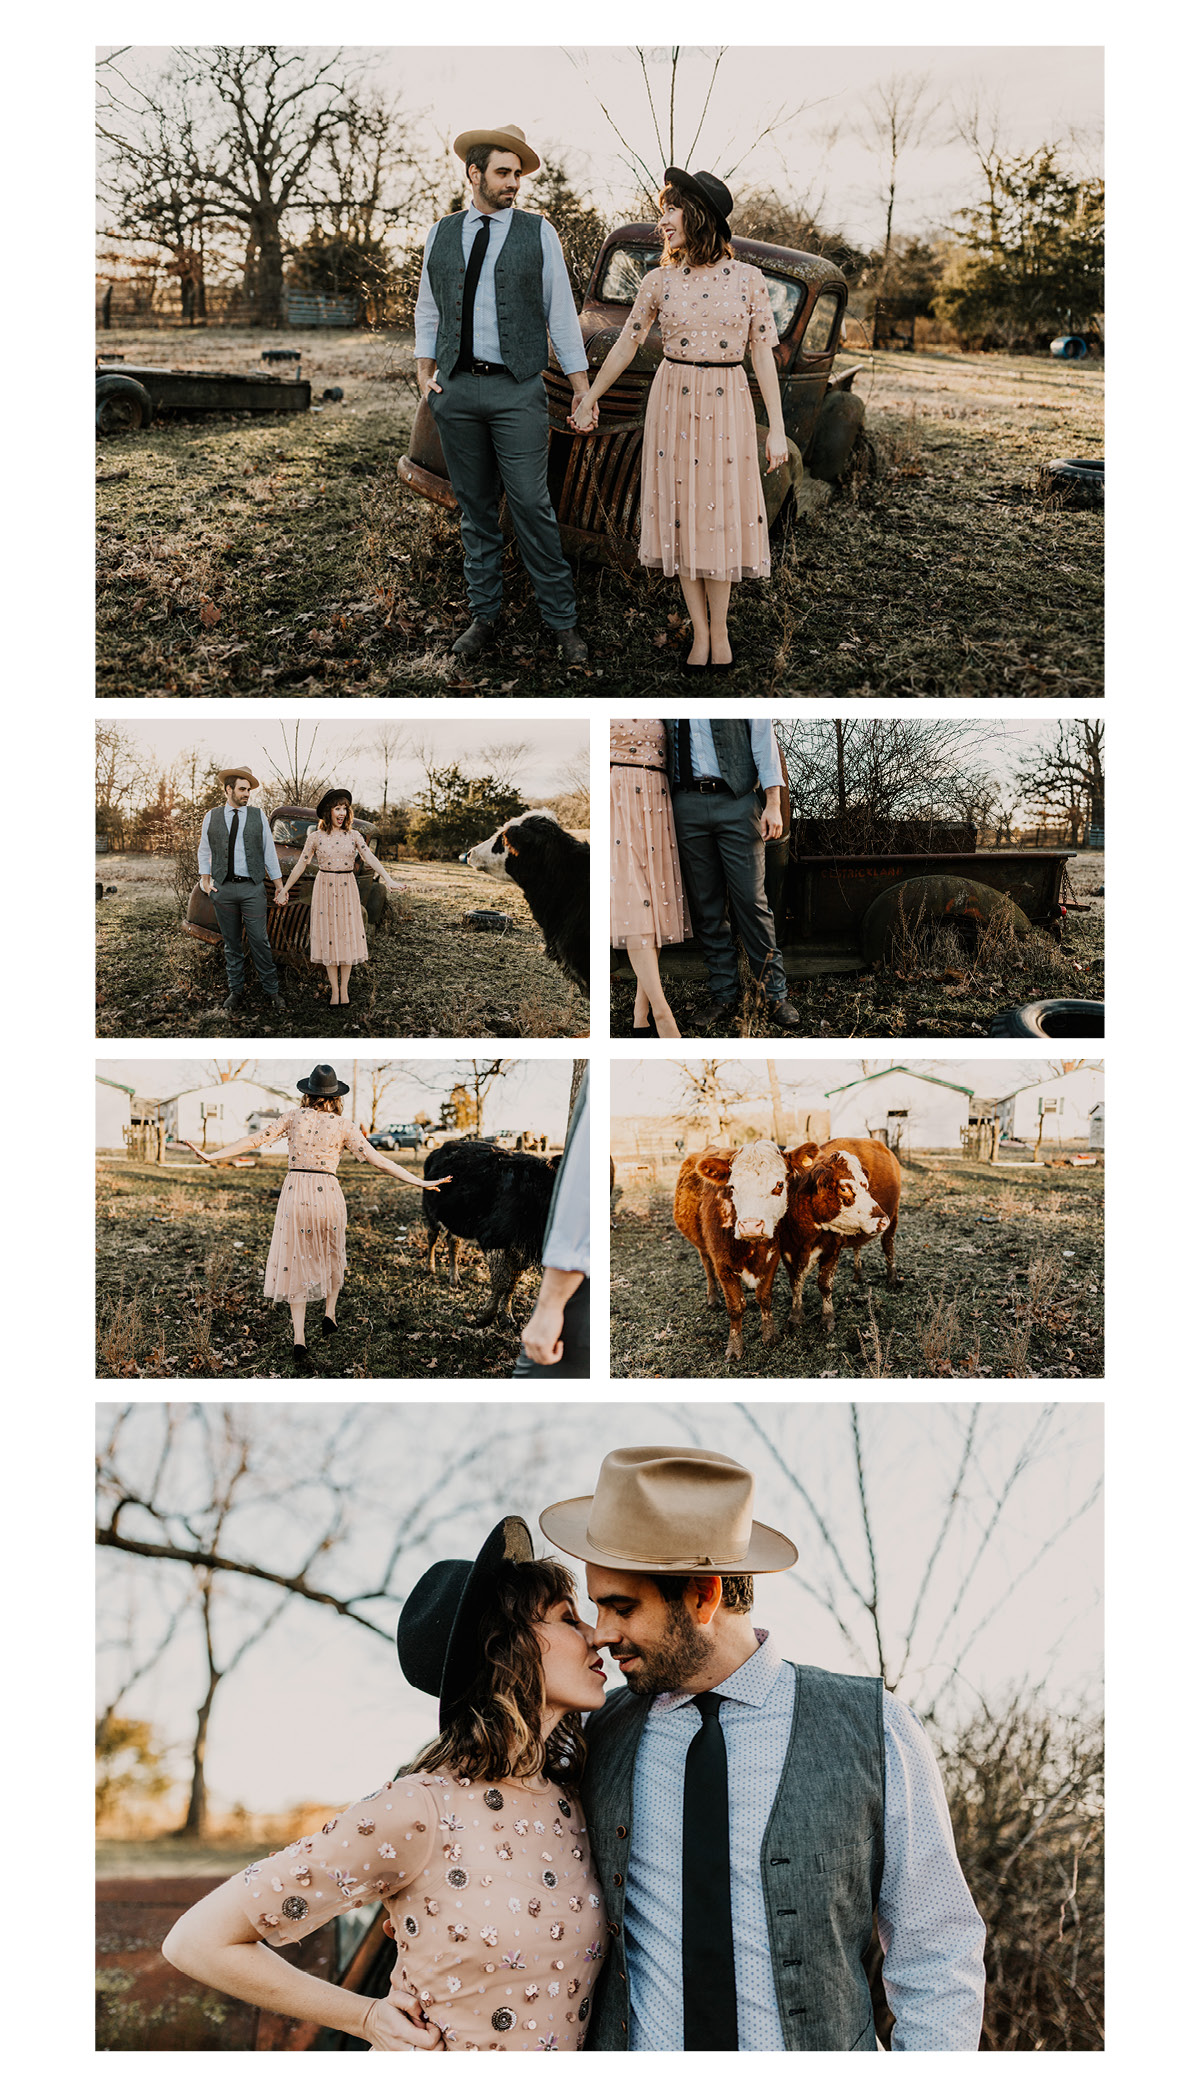 adventure-elopement-arkansas-photographer5.jpg